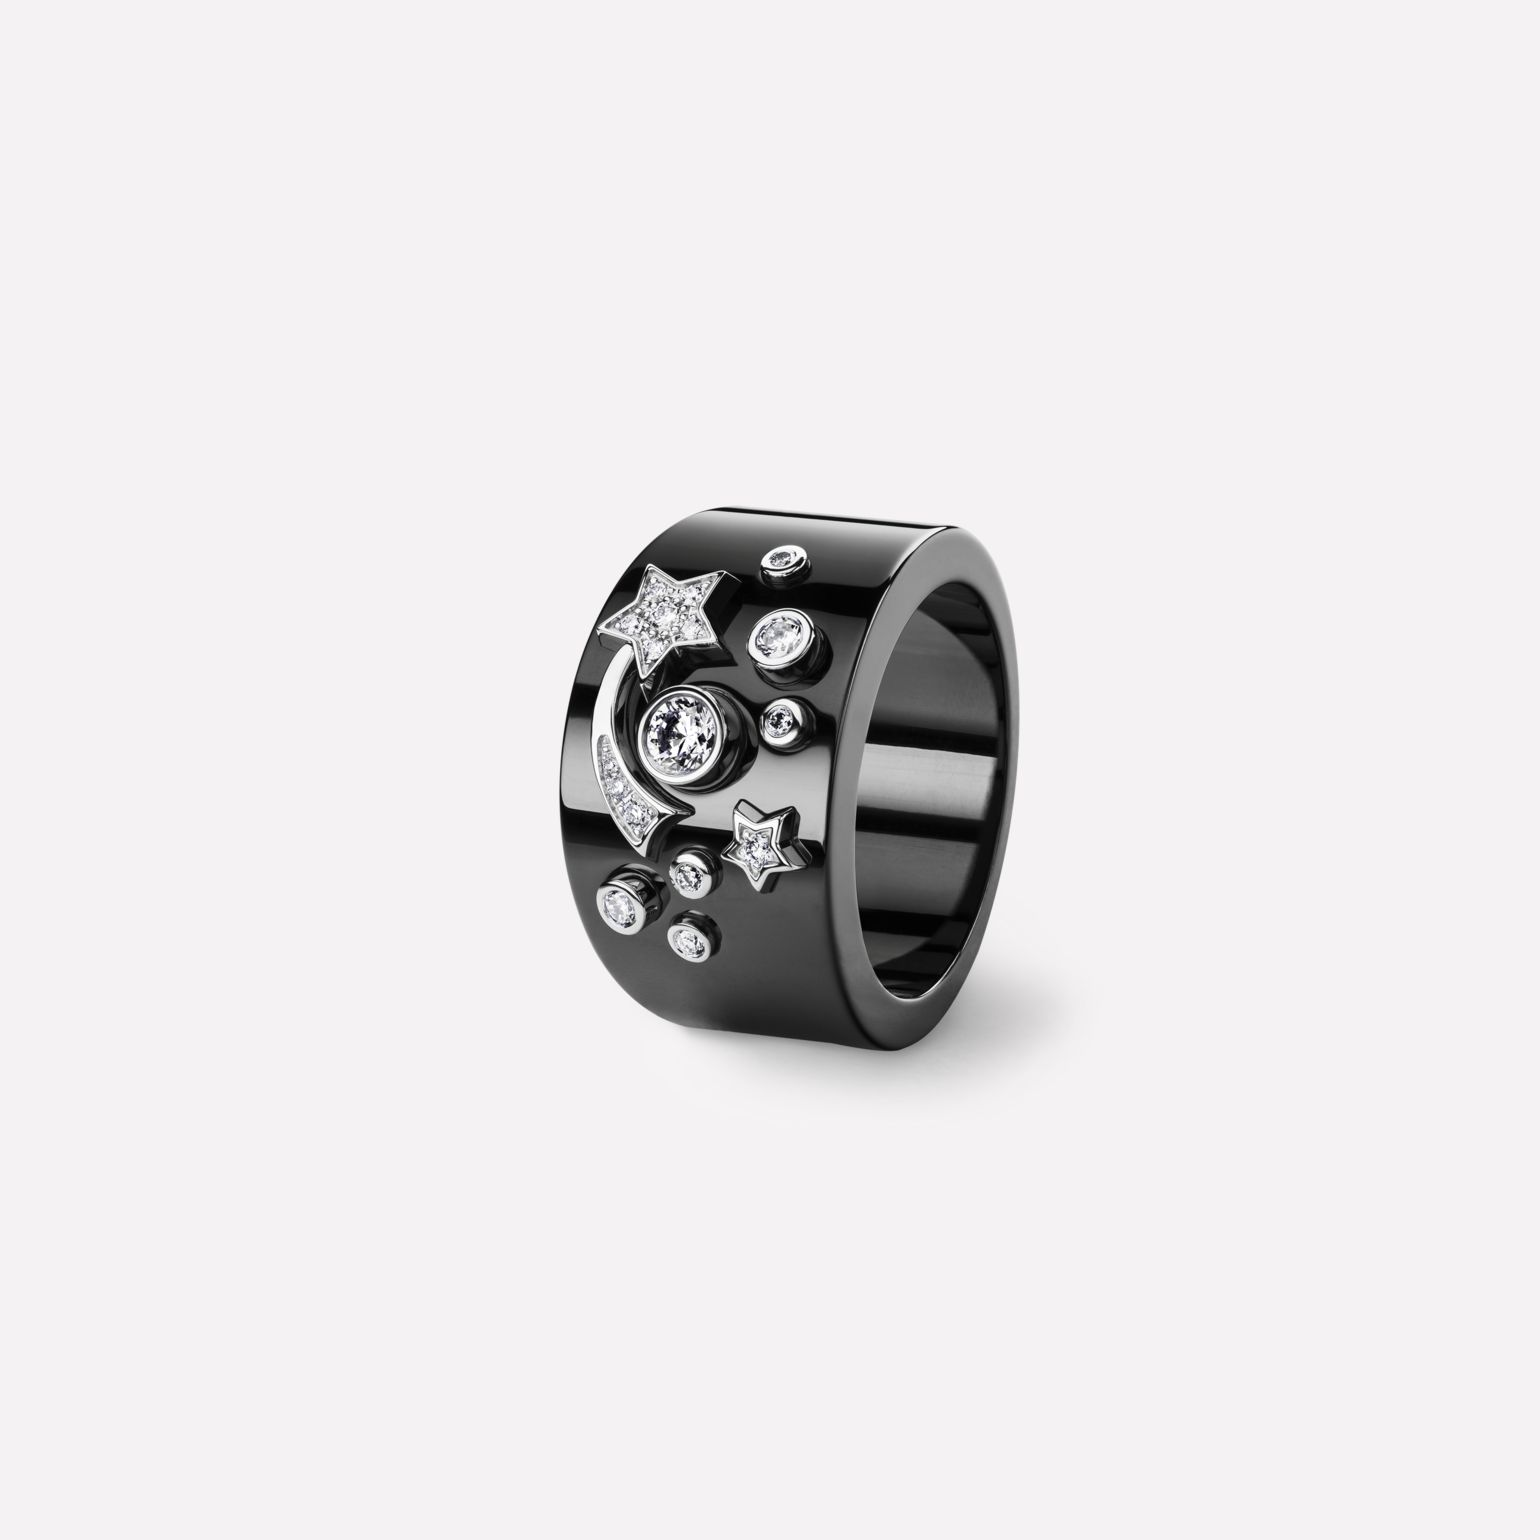 Comète ring Star ring, large version, in black ceramic, 18K white gold and diamonds